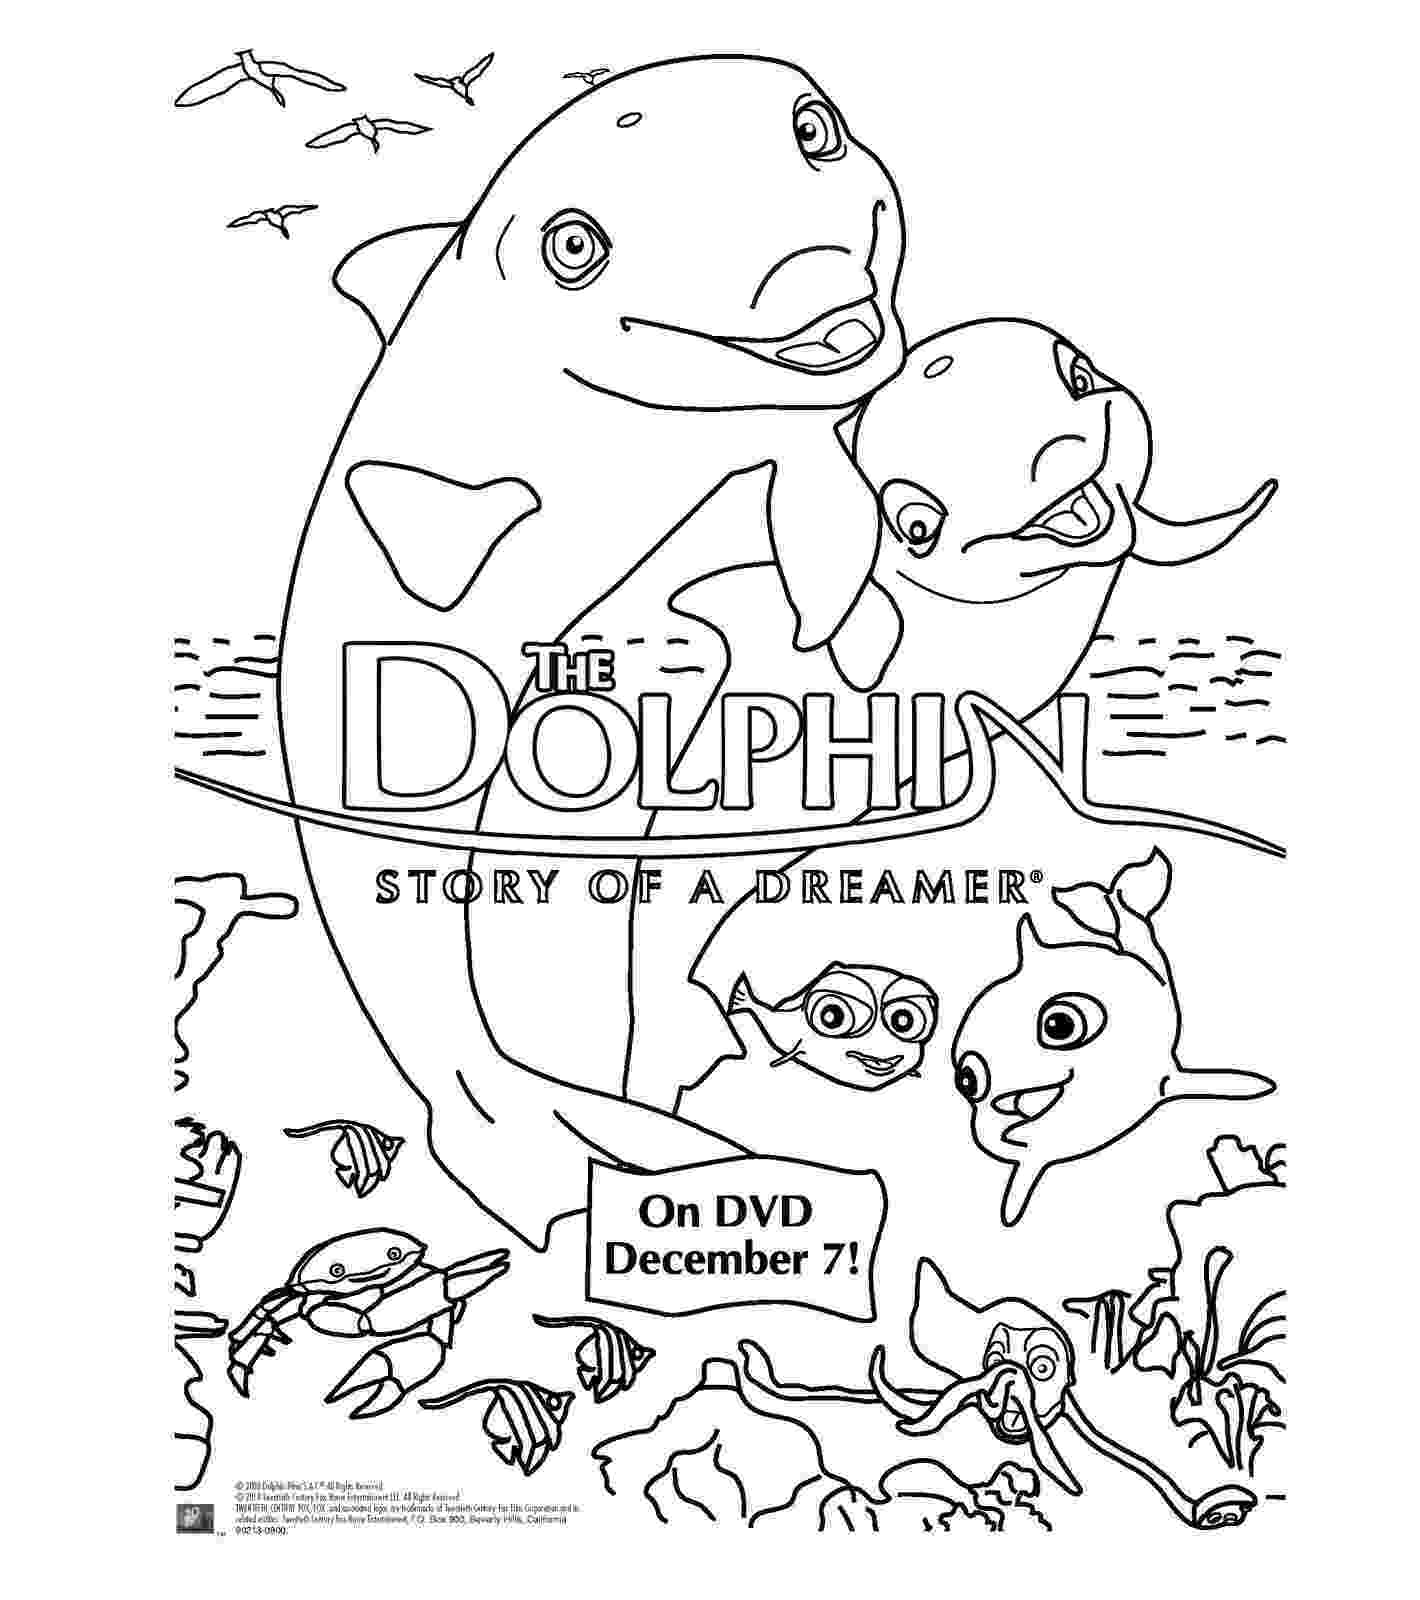 dolphin coloring pages to print out heck of a bunch the dolphin story of a dreamer dvd print dolphin coloring to pages out